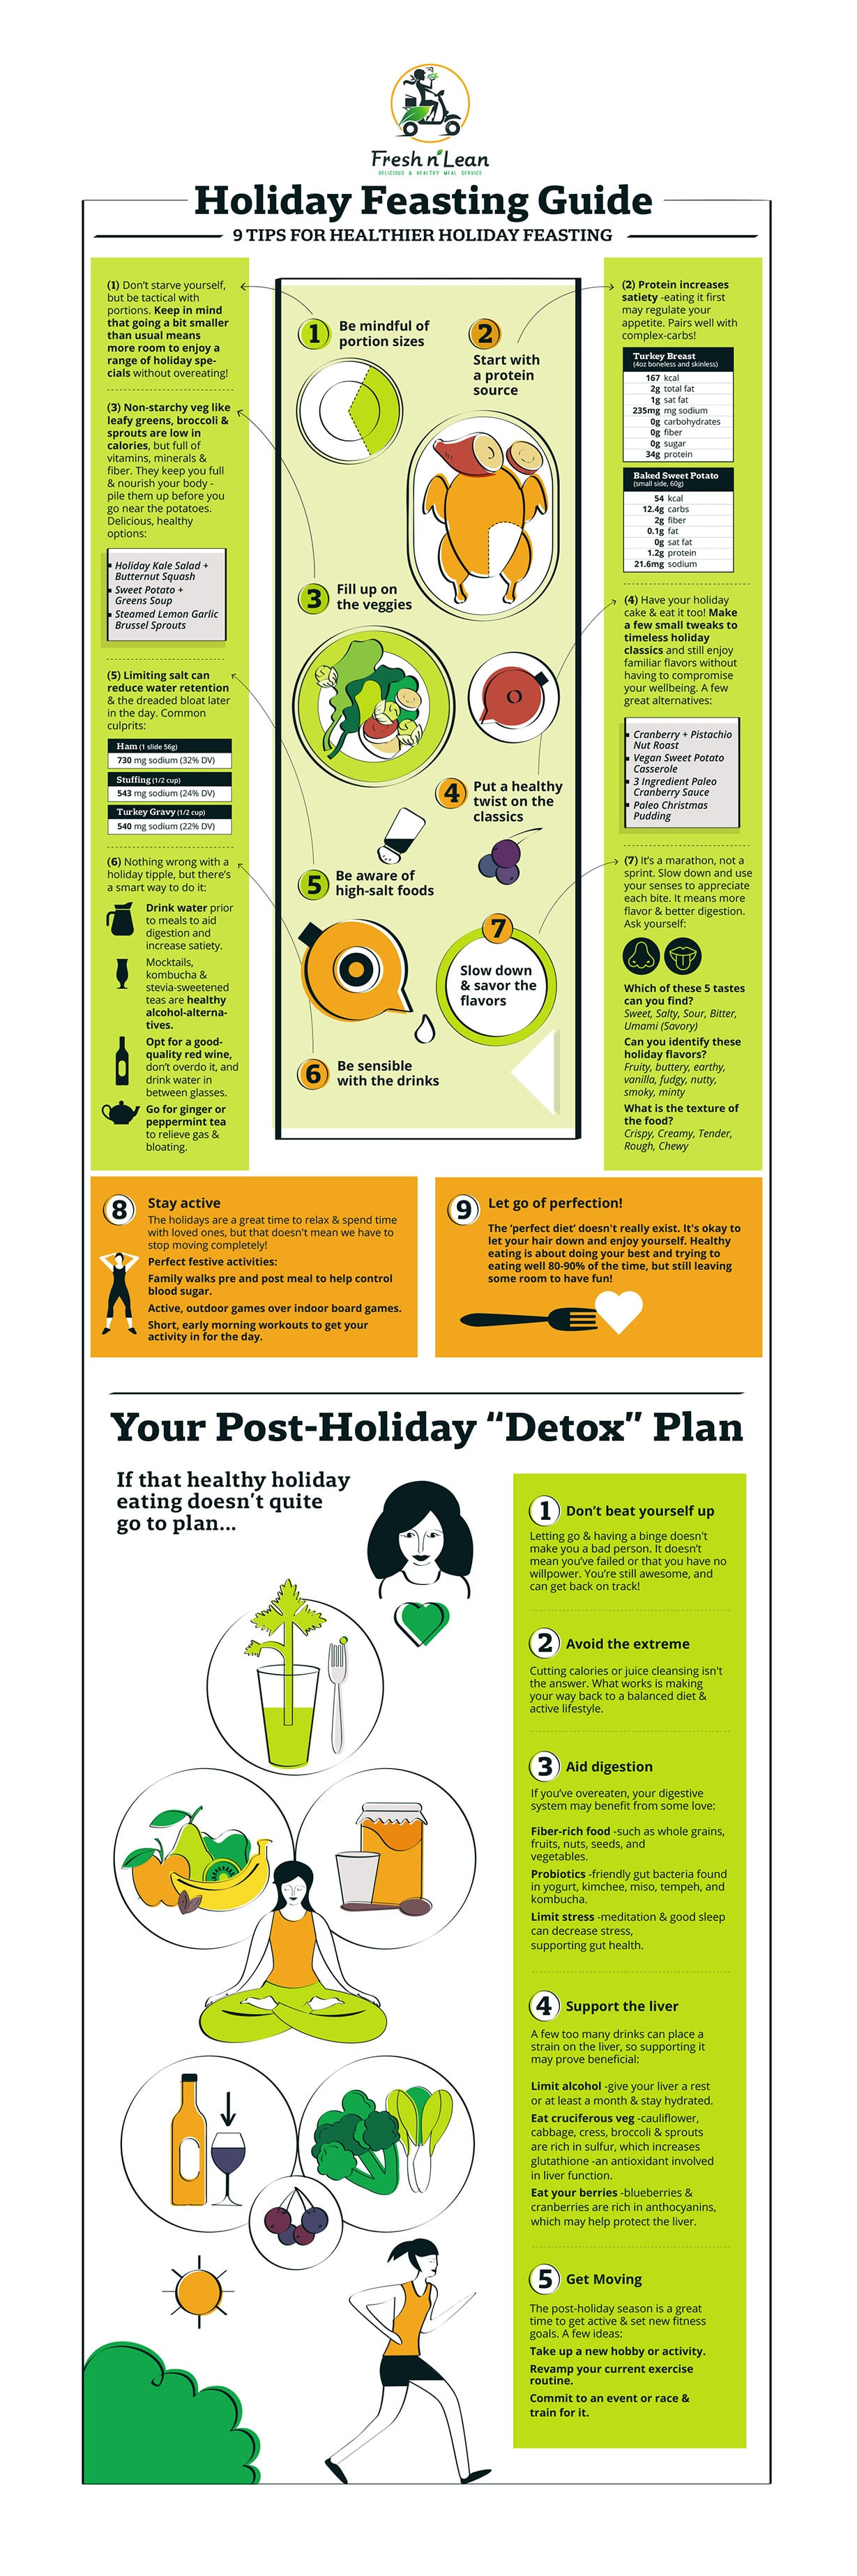 Detox After Thanksgiving - How to Detox After Thanksgiving